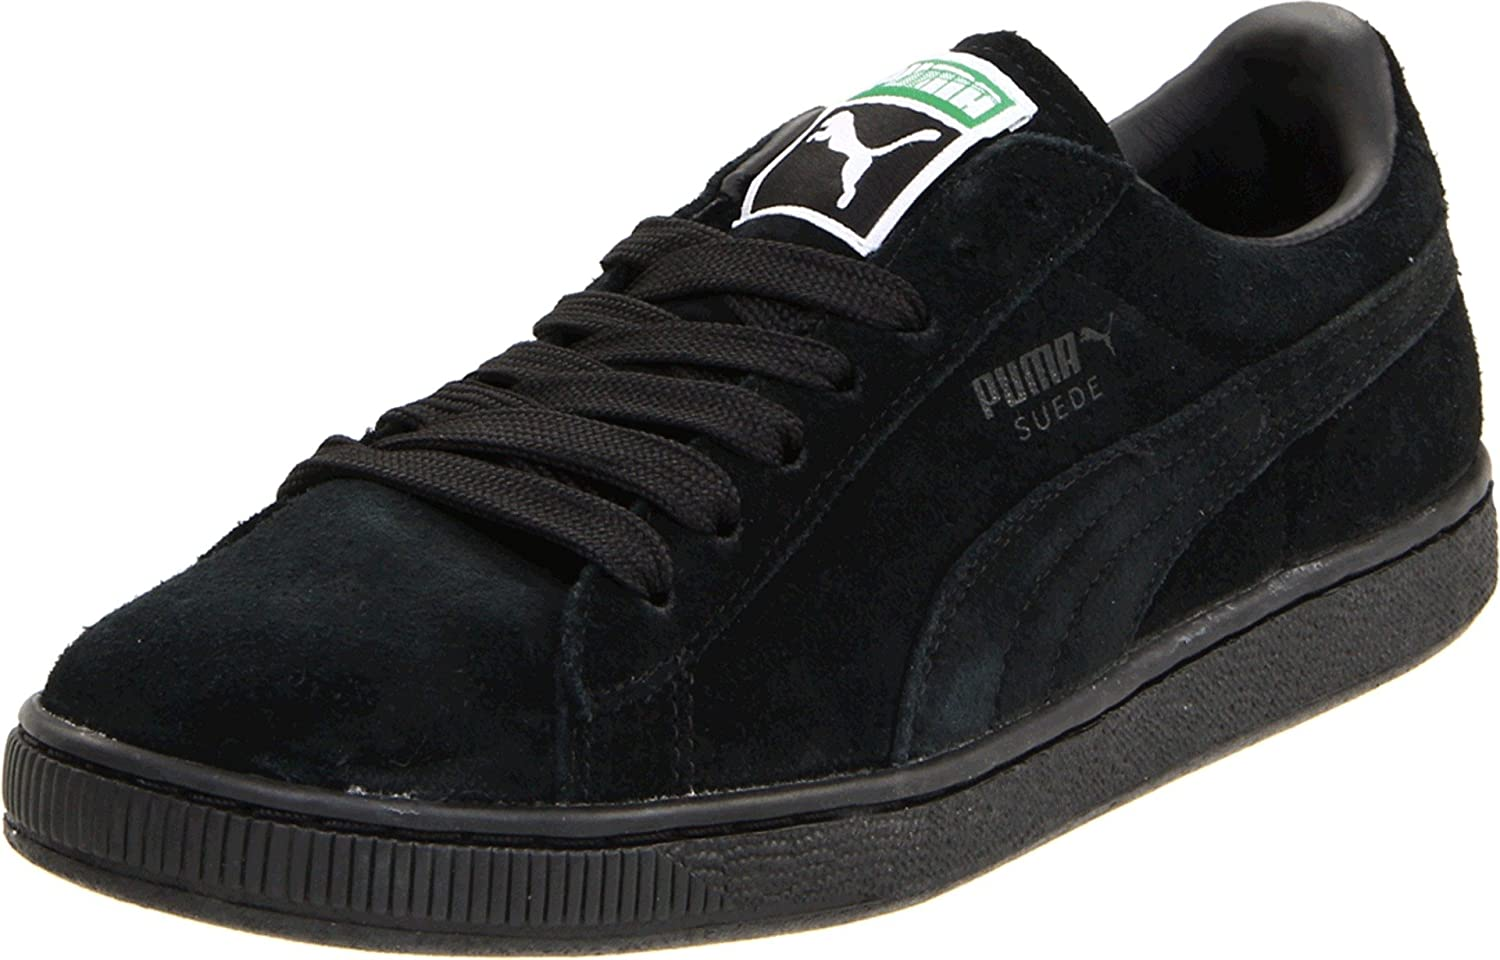 puma suede find the lowest prices on the internet the. Black Bedroom Furniture Sets. Home Design Ideas